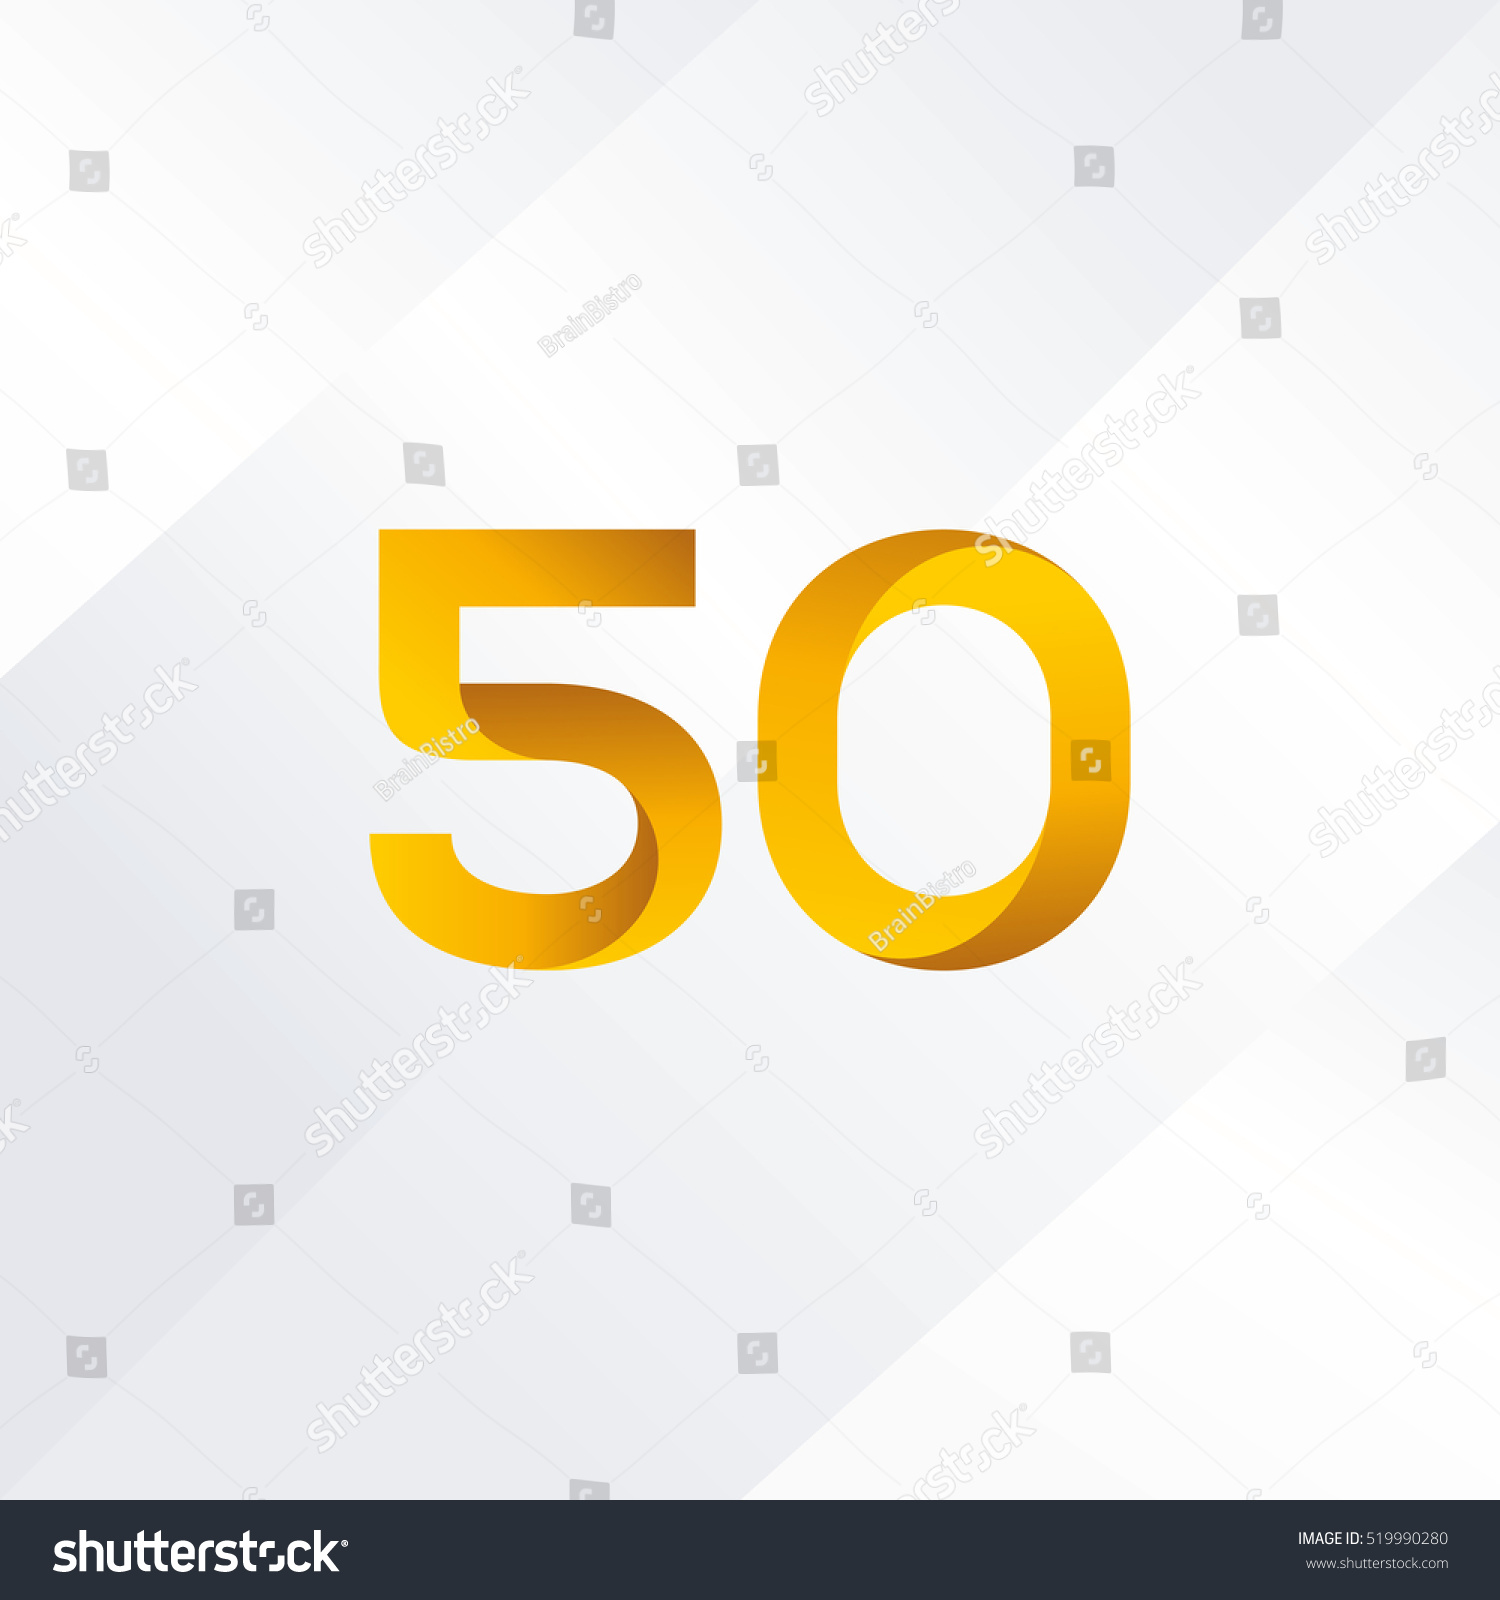 50 business cards image collections free business cards business card template set 50 executive summary template number fifty 50 logo 50 icon stock vector magicingreecefo Gallery